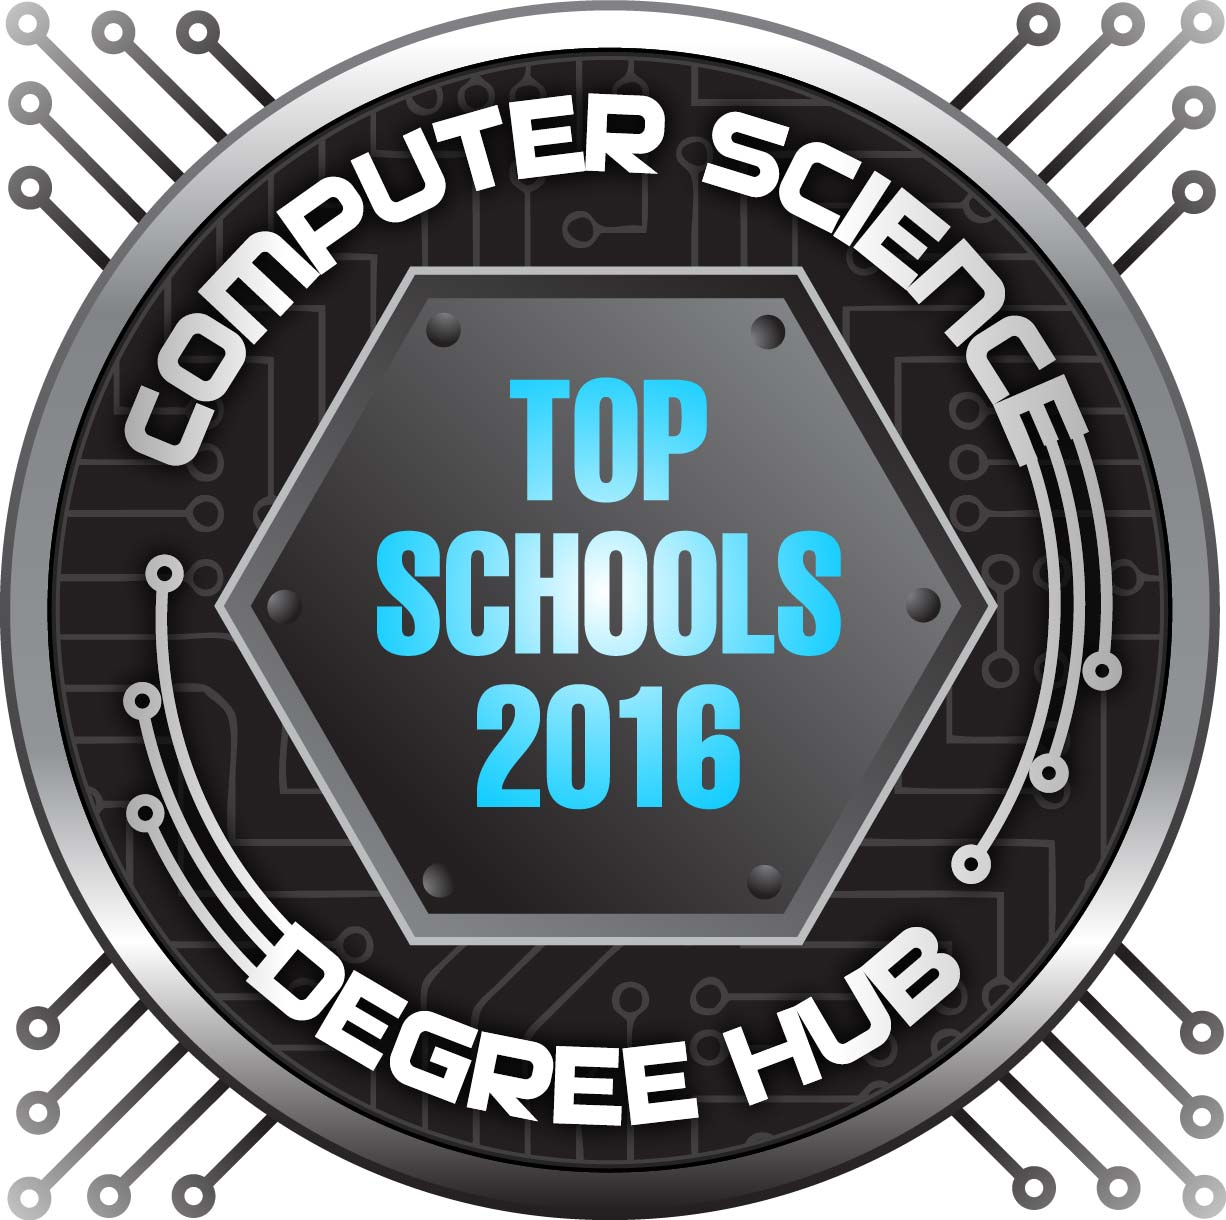 Top 20 artificial intelligence engineering schools in the us computer science degree hub top schools 2016 click here for high resolution badge solutioingenieria Choice Image